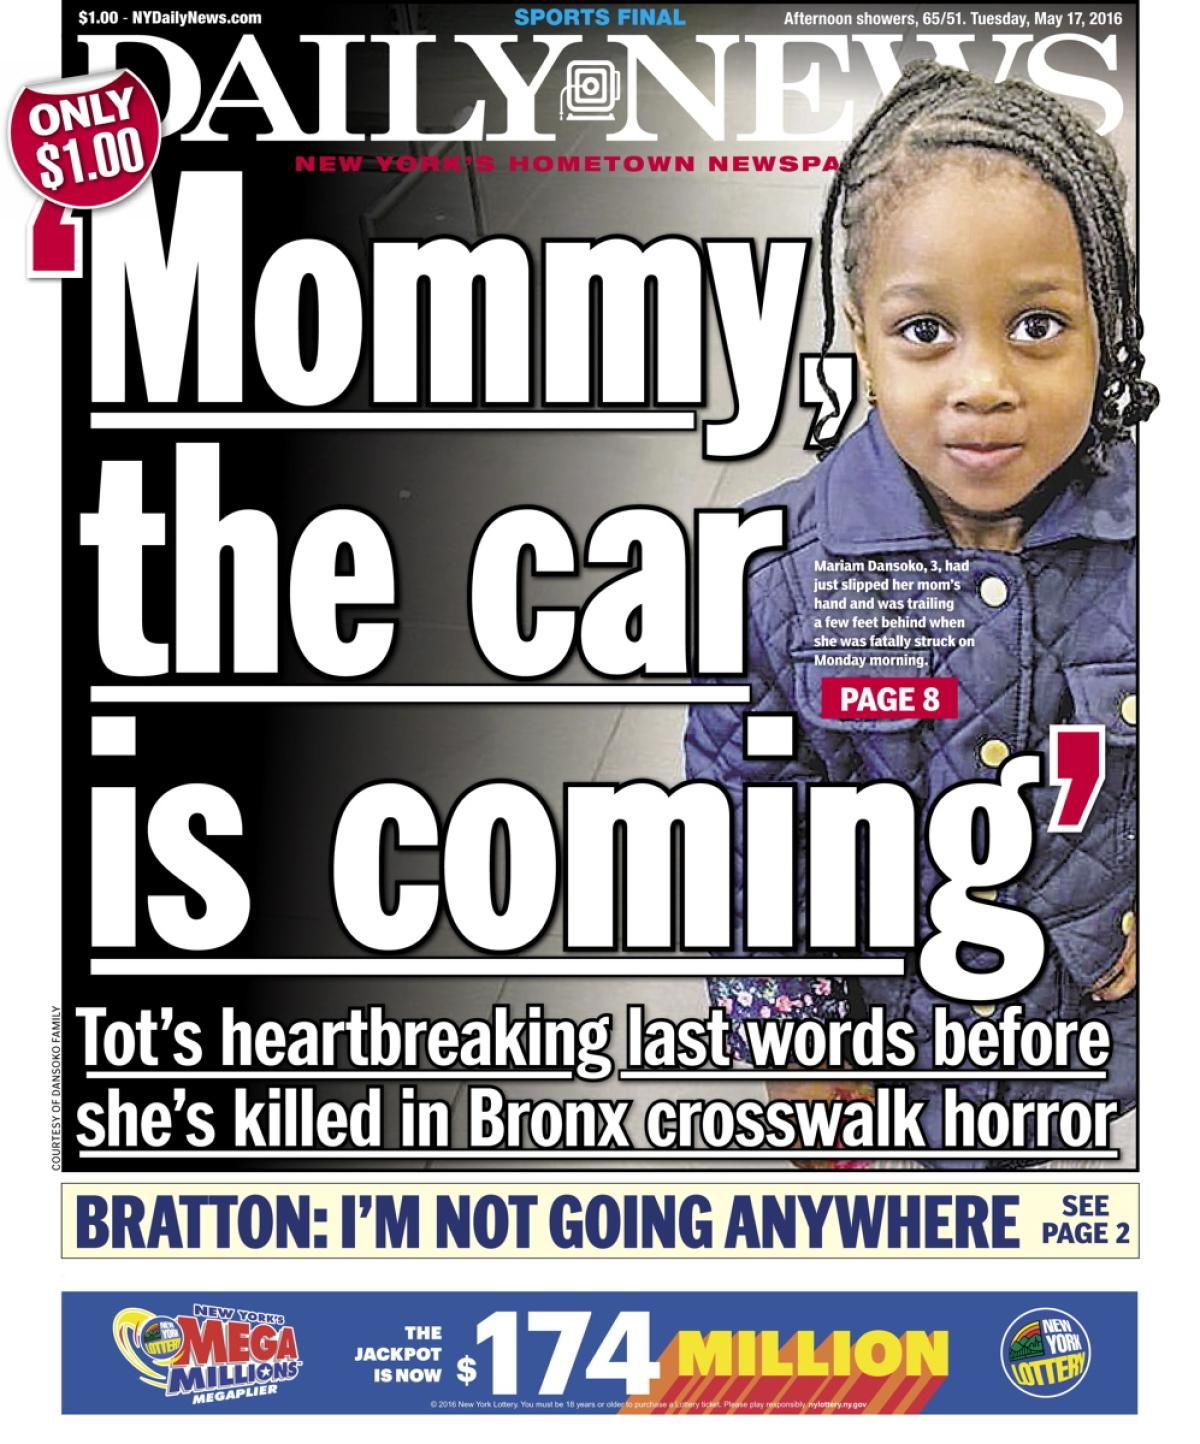 New York Daily News Tuesday: Mommy The Car Is Coming: May 17, 2016